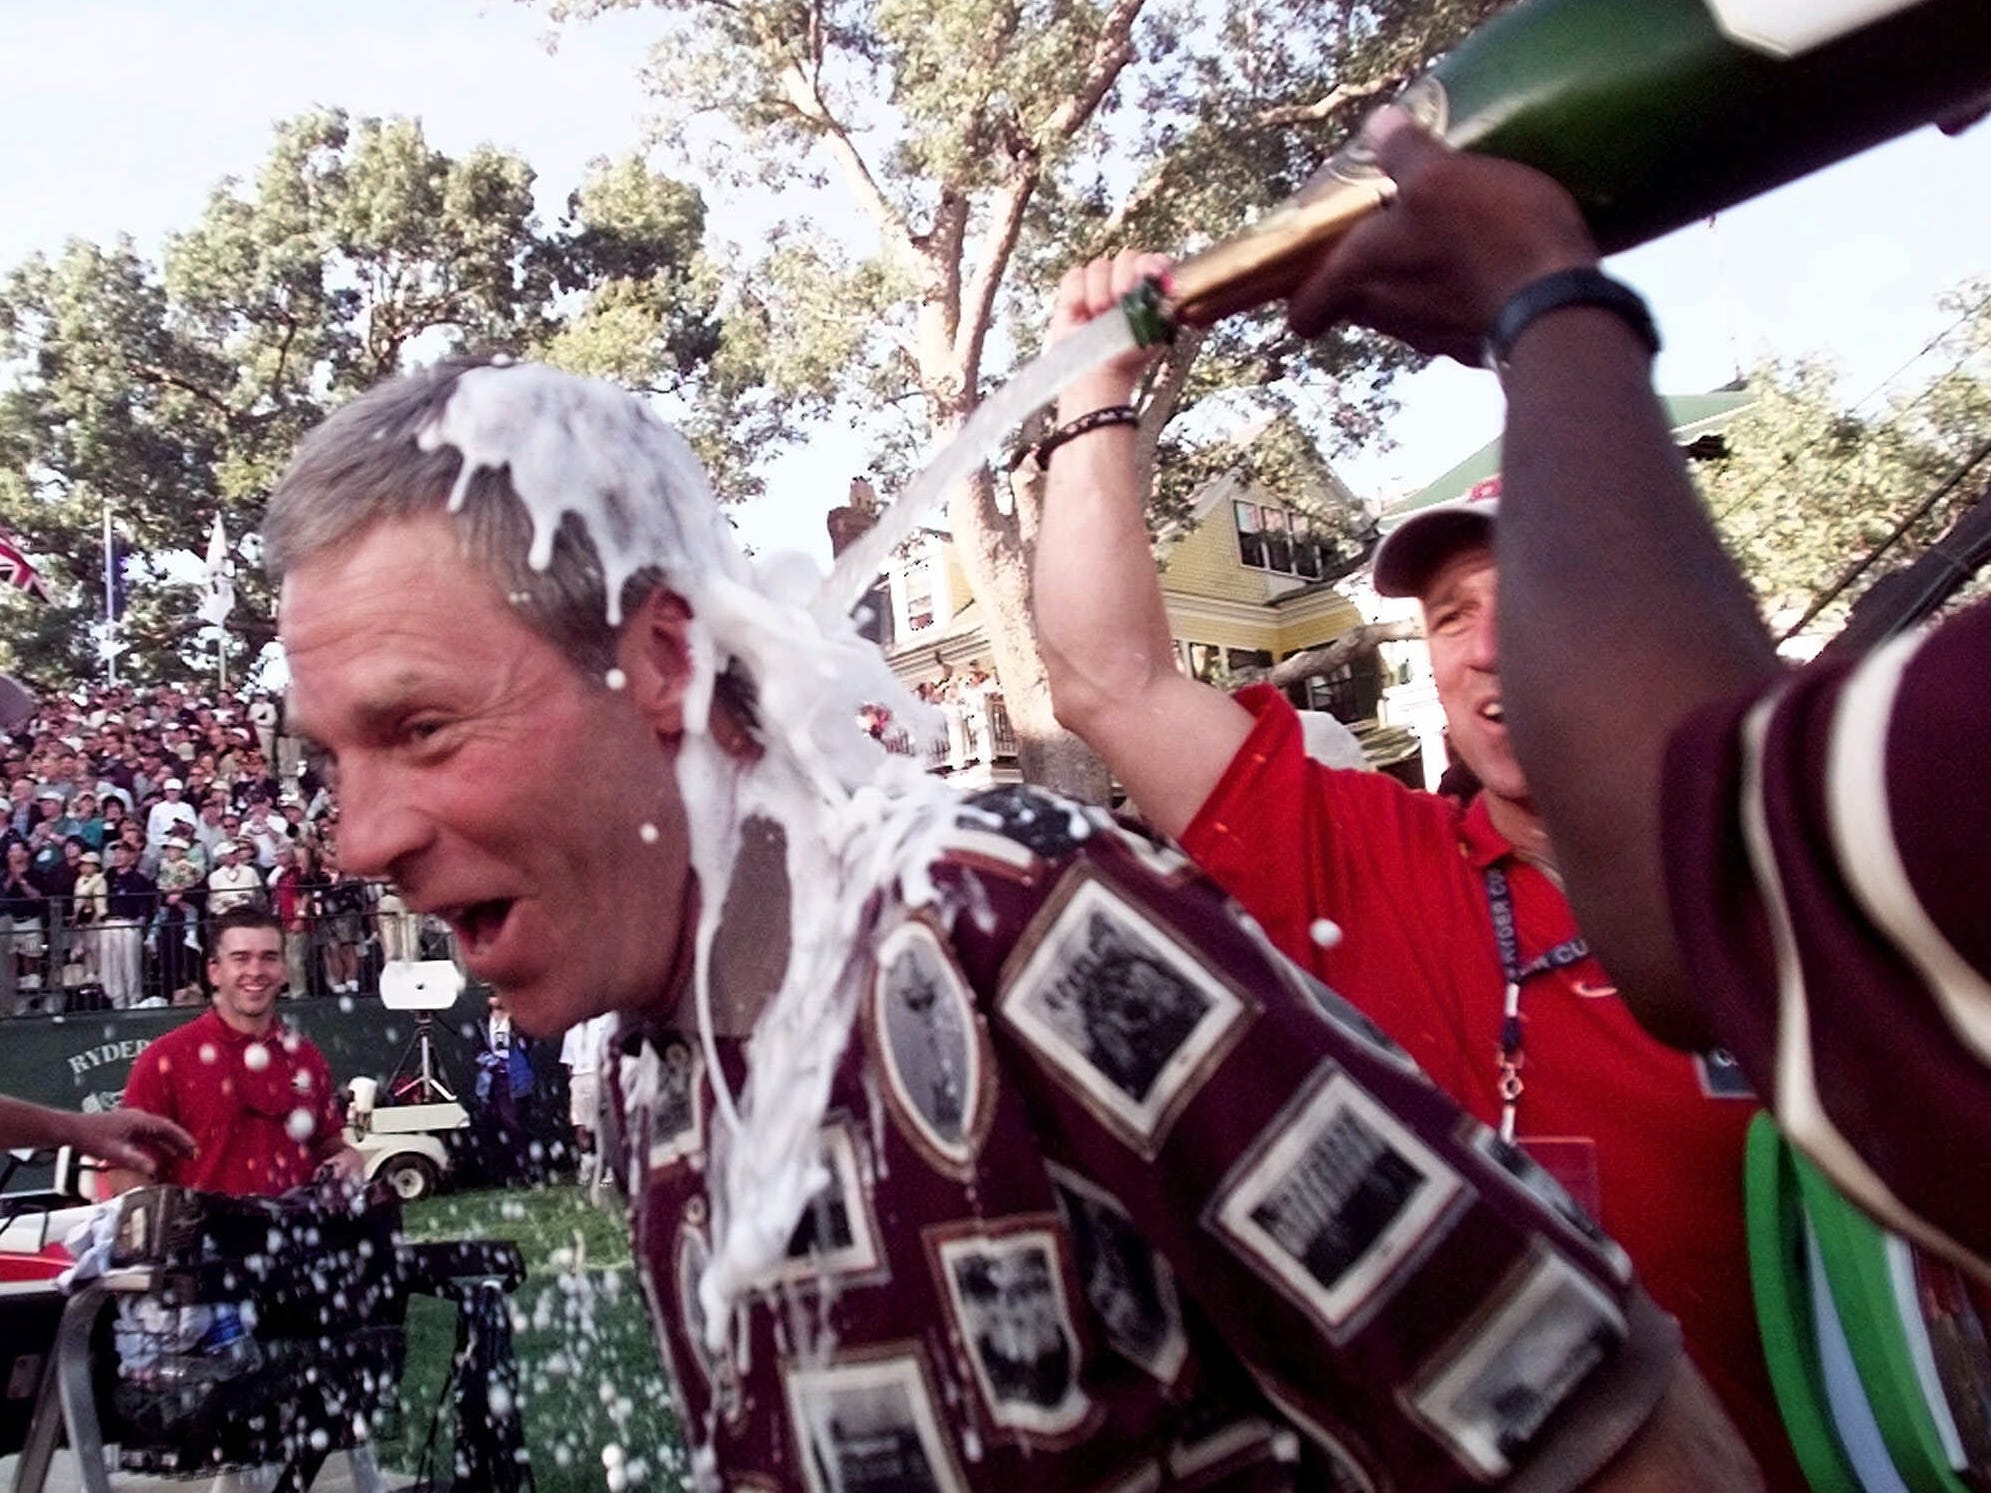 Team USA, 1999: Captain Ben Crenshaw is drenched in champagne after the U.S. defeated Europe 14.5-13.5.